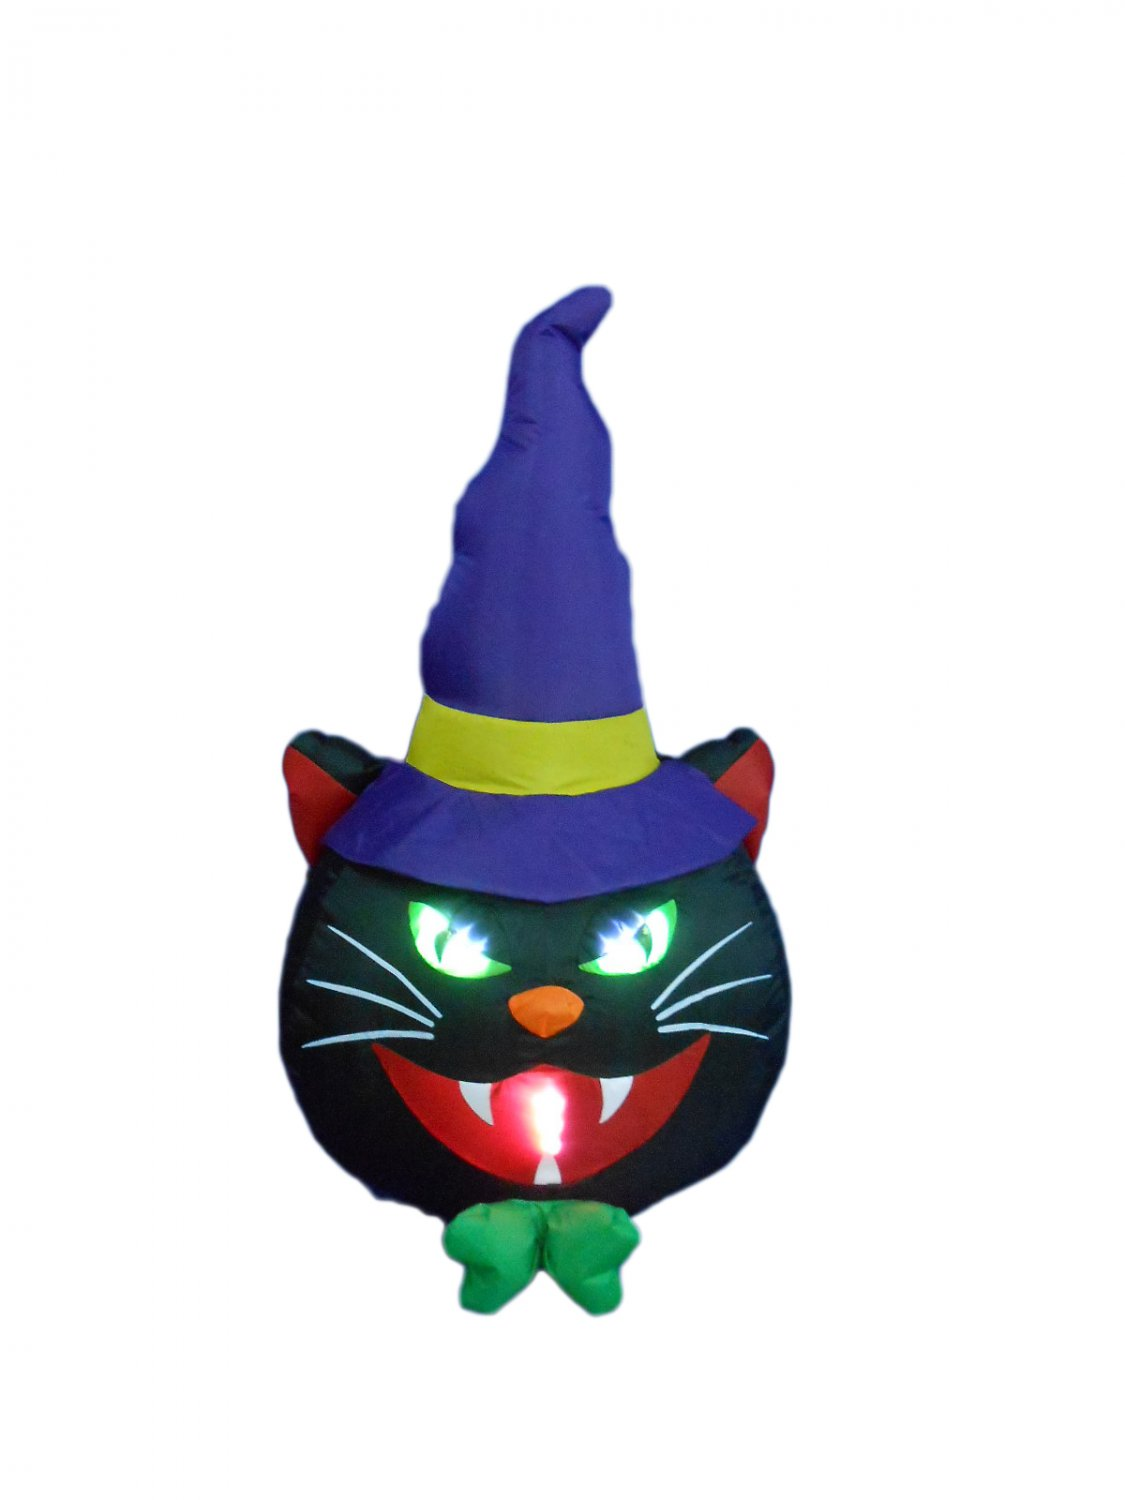 4 Foot Tall Halloween Inflatable Black Cat with Hat Decoration #276